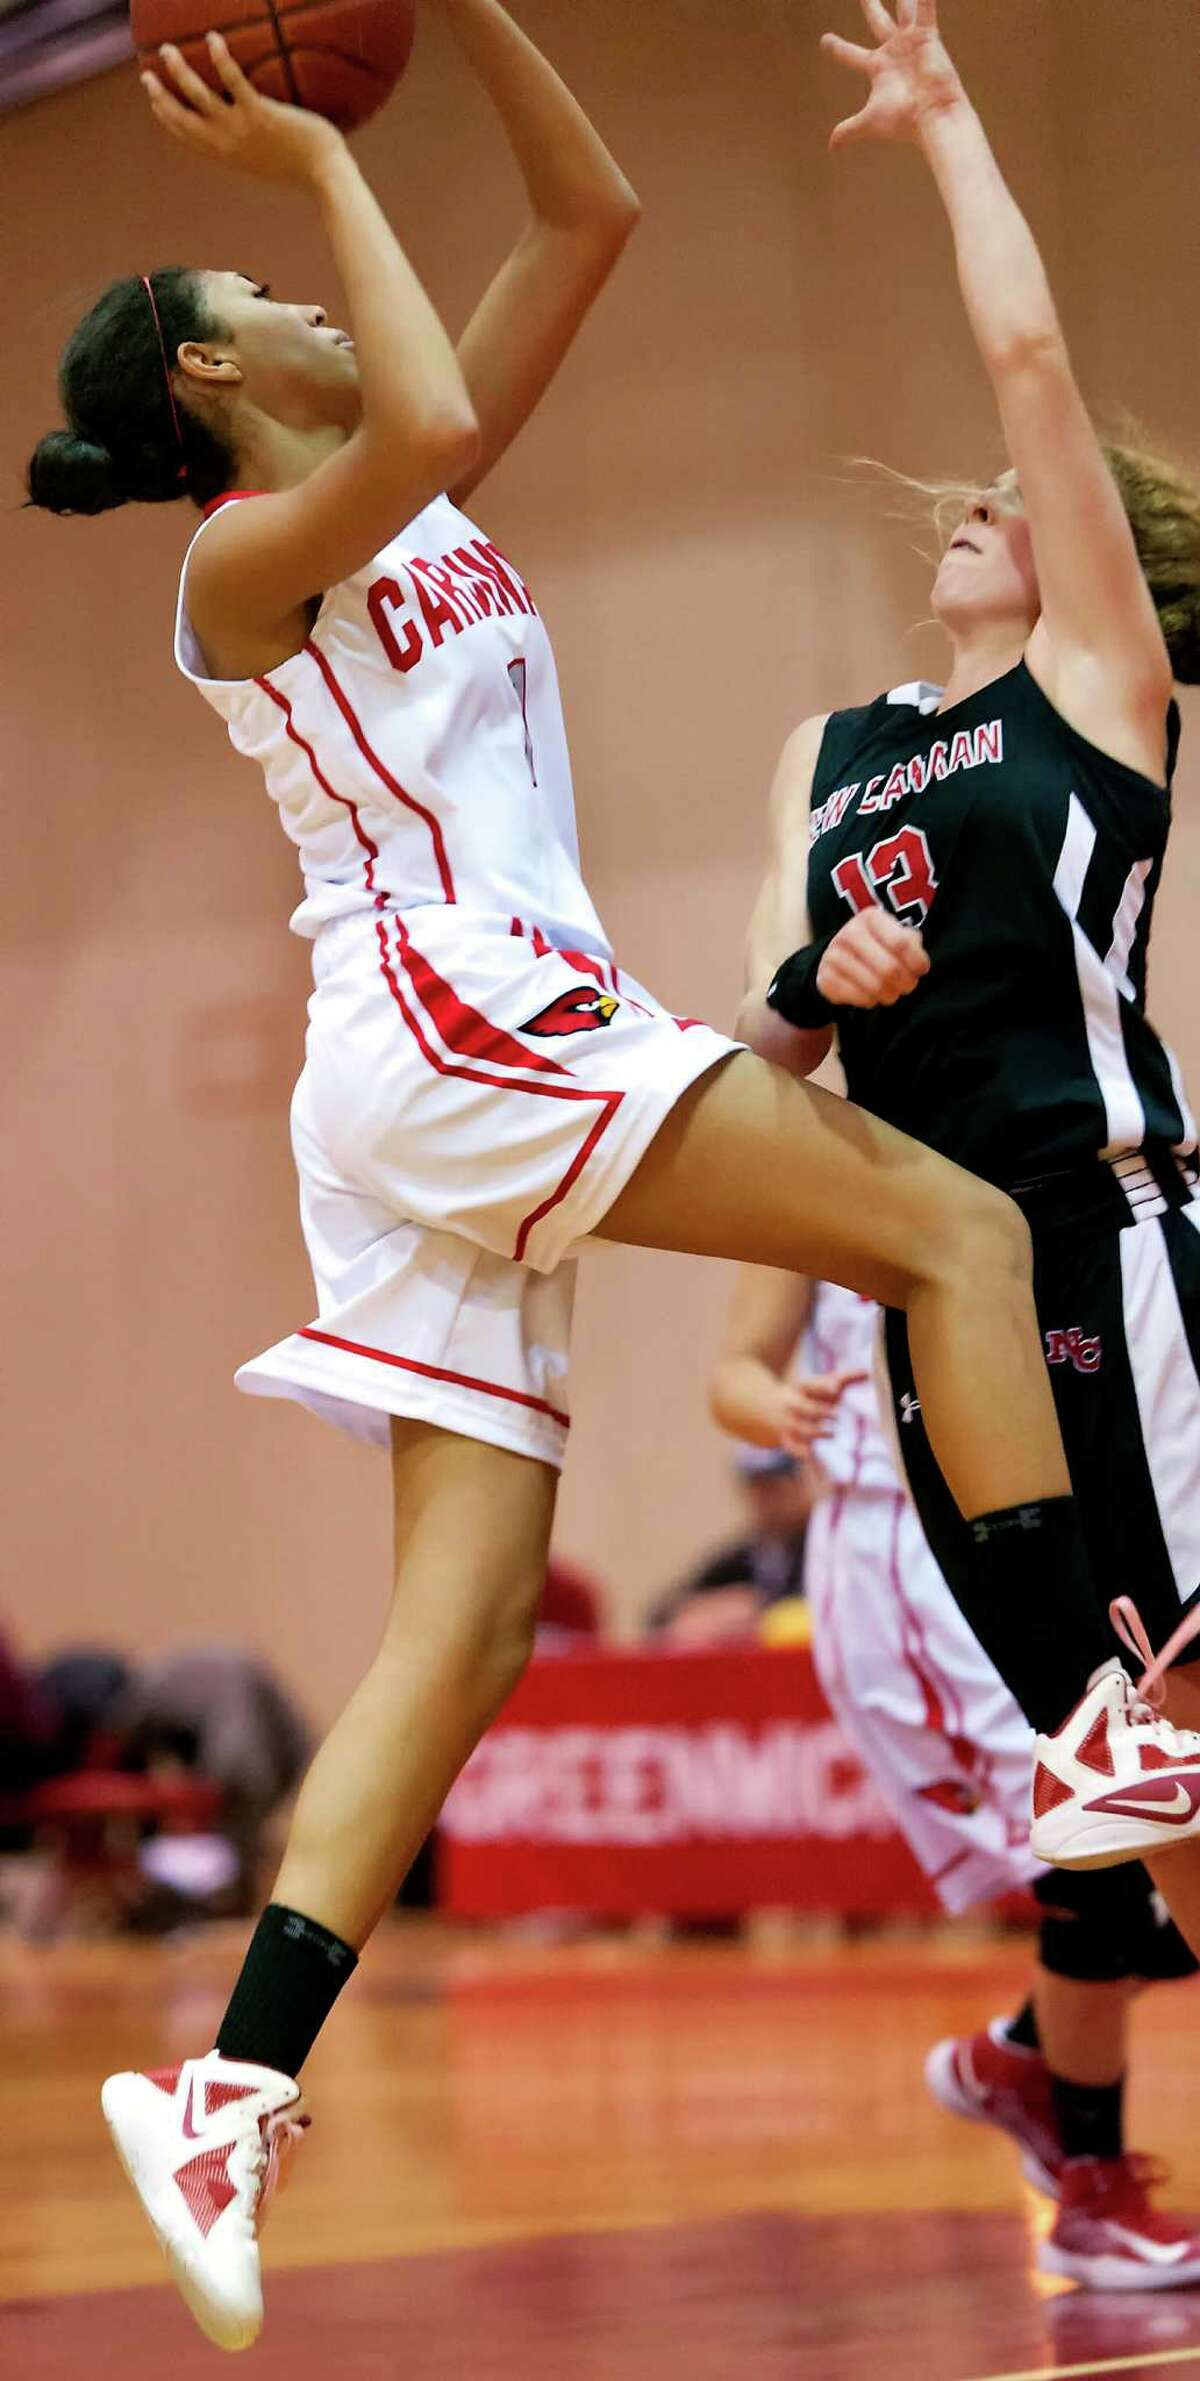 Greenwich high school's Jenny Cespedes goes up for a shot against New Canaan high school's Elizabeth Miller in girls basketball game played at Greenwich high school, Greenwich, CT on Wednesday December 5th, 2012.